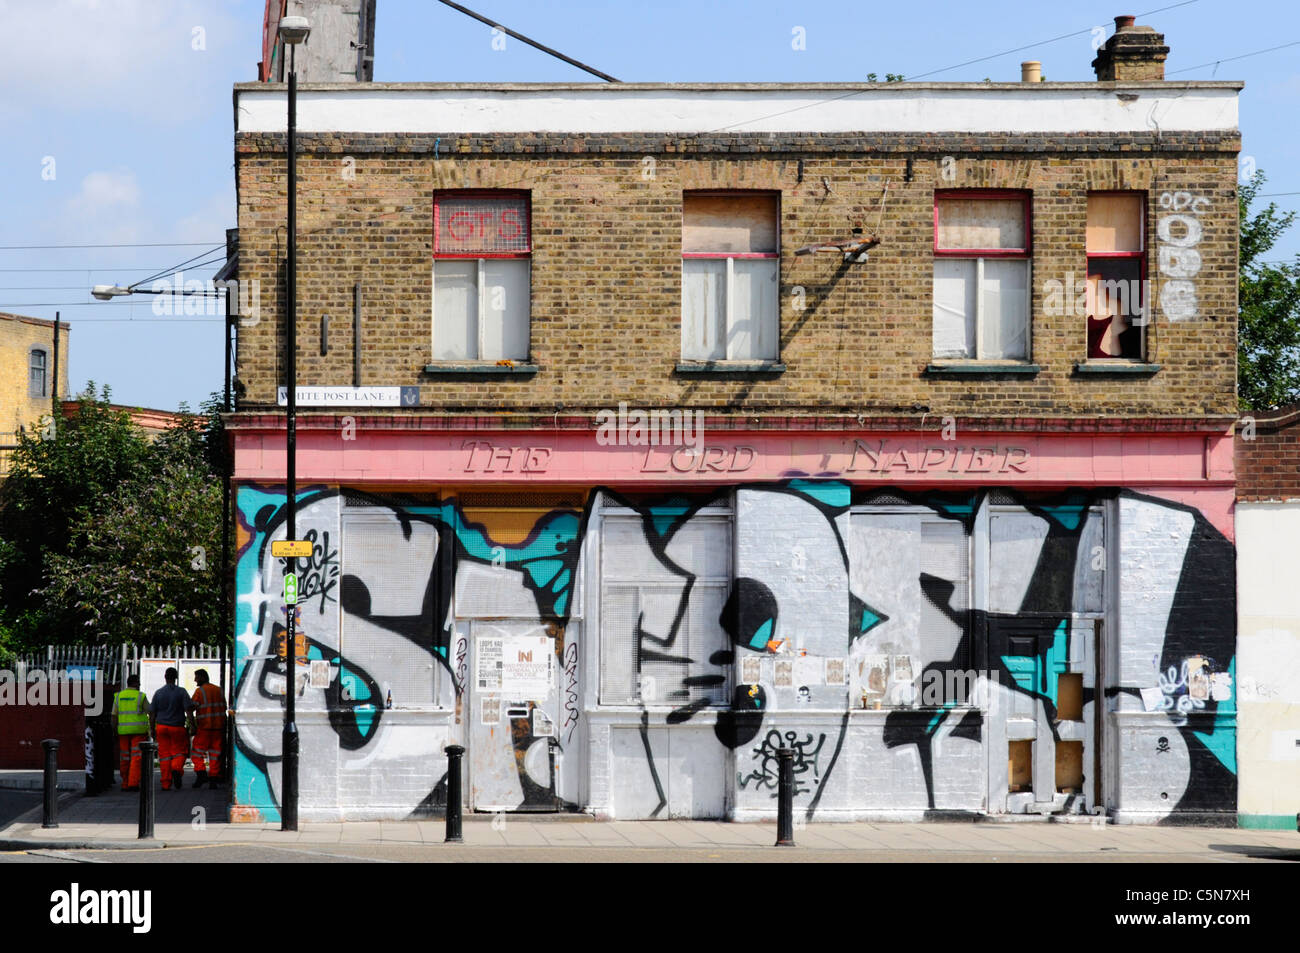 East London street scene failed business redundant closed vandalised & boarded up pub building covered in street - Stock Image